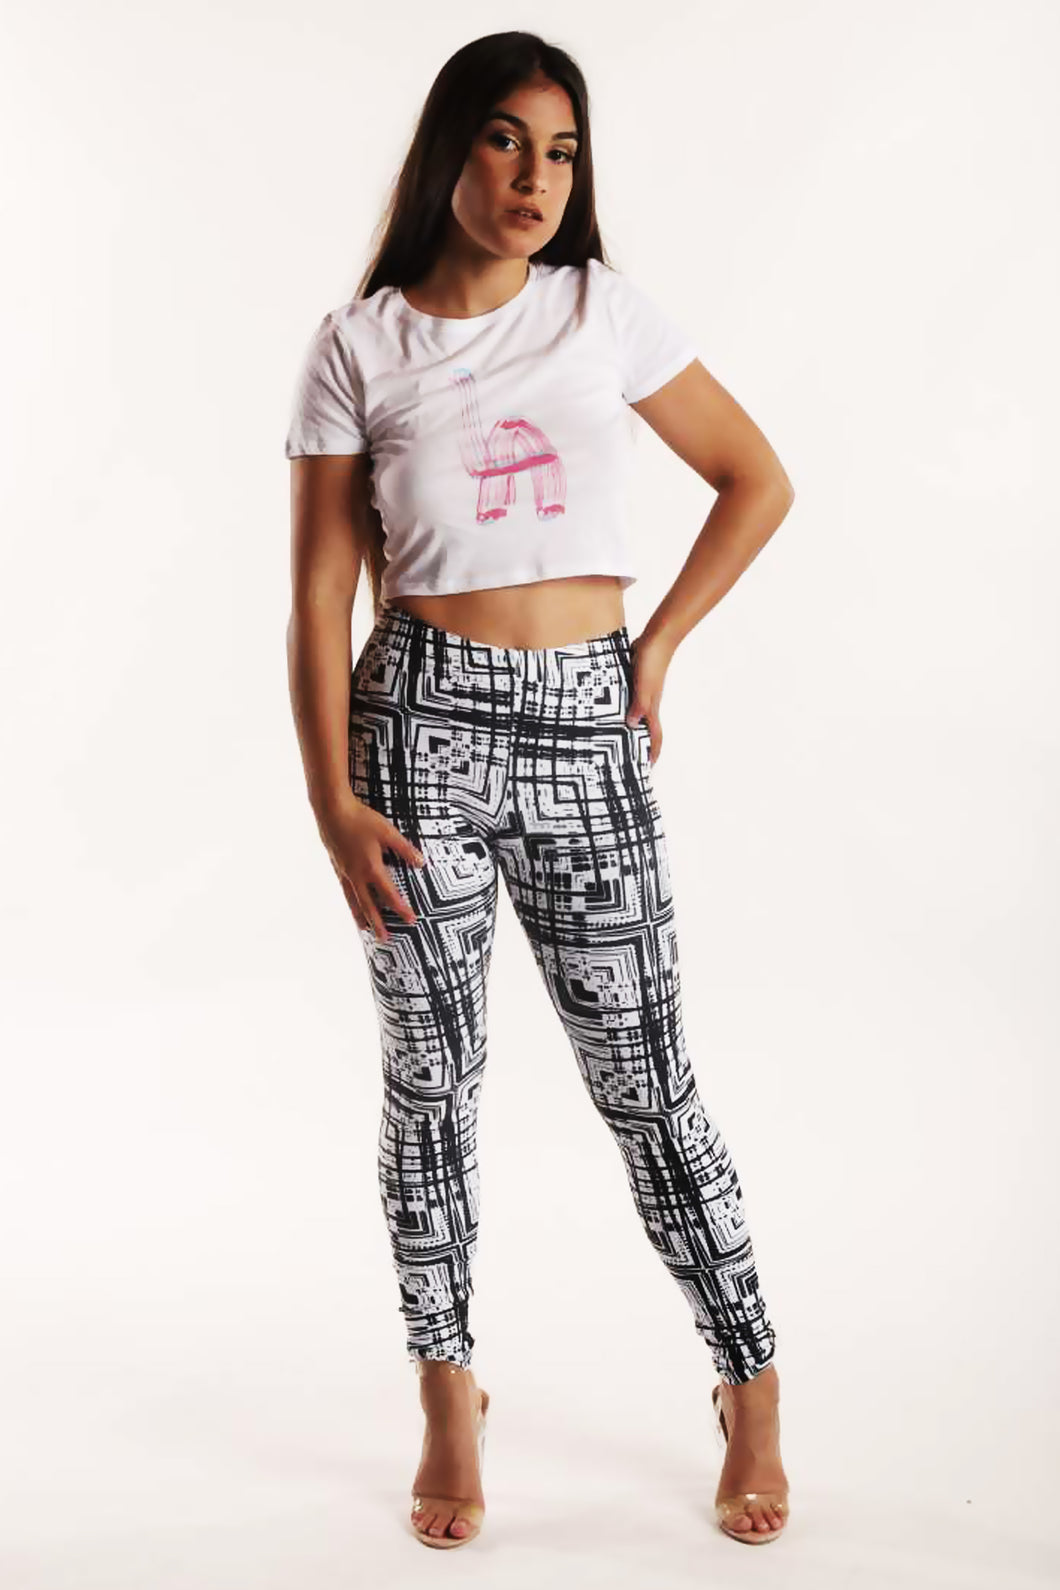 Black and White Light Painting Leggings